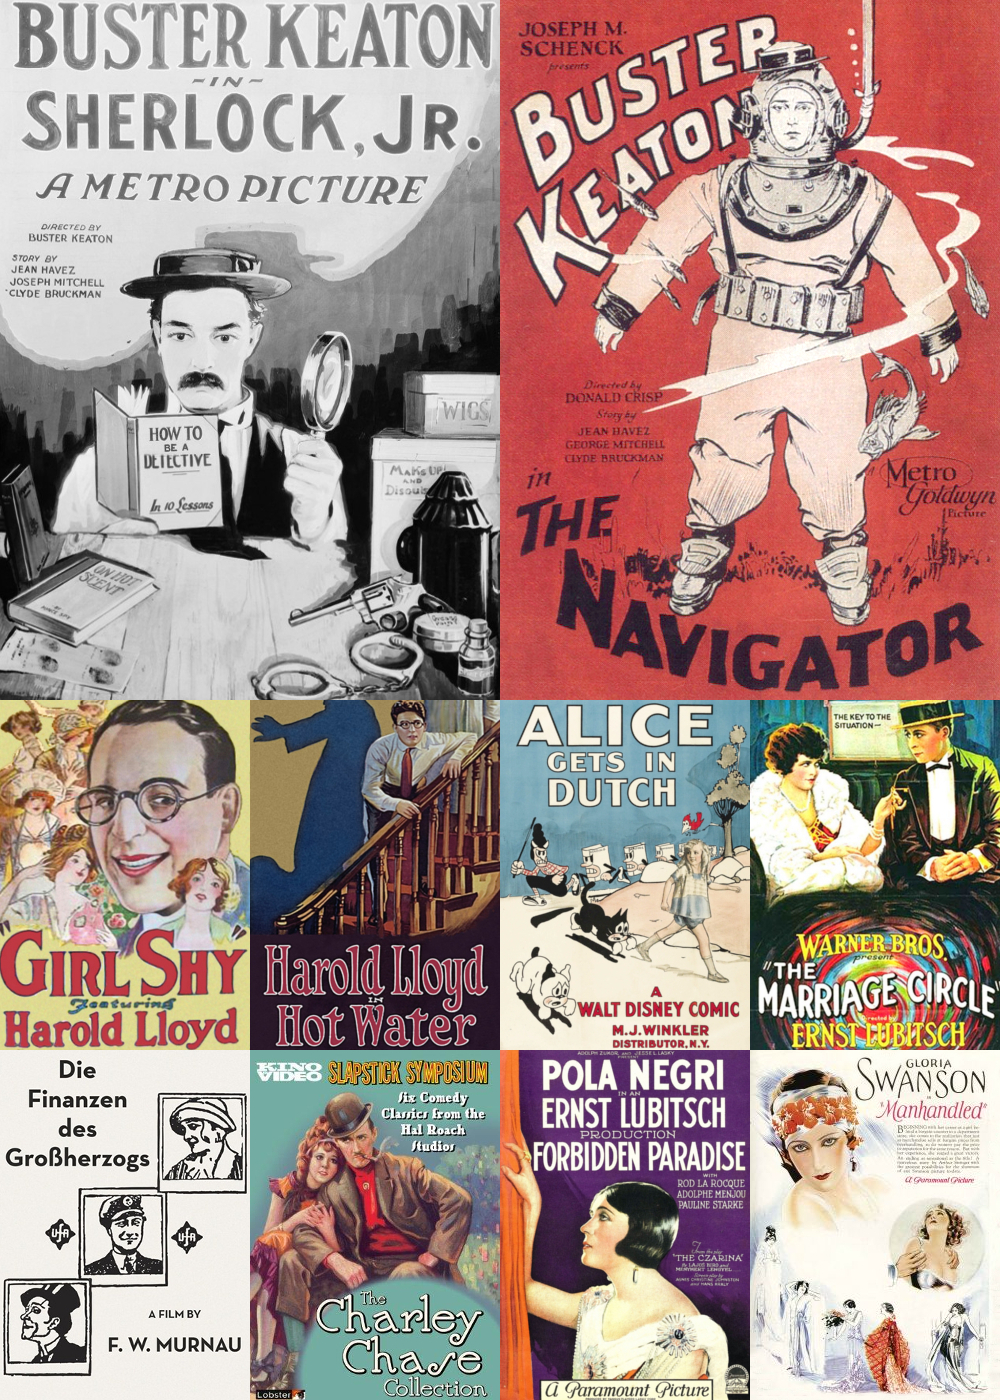 Top 10 Comedy Movies 1924